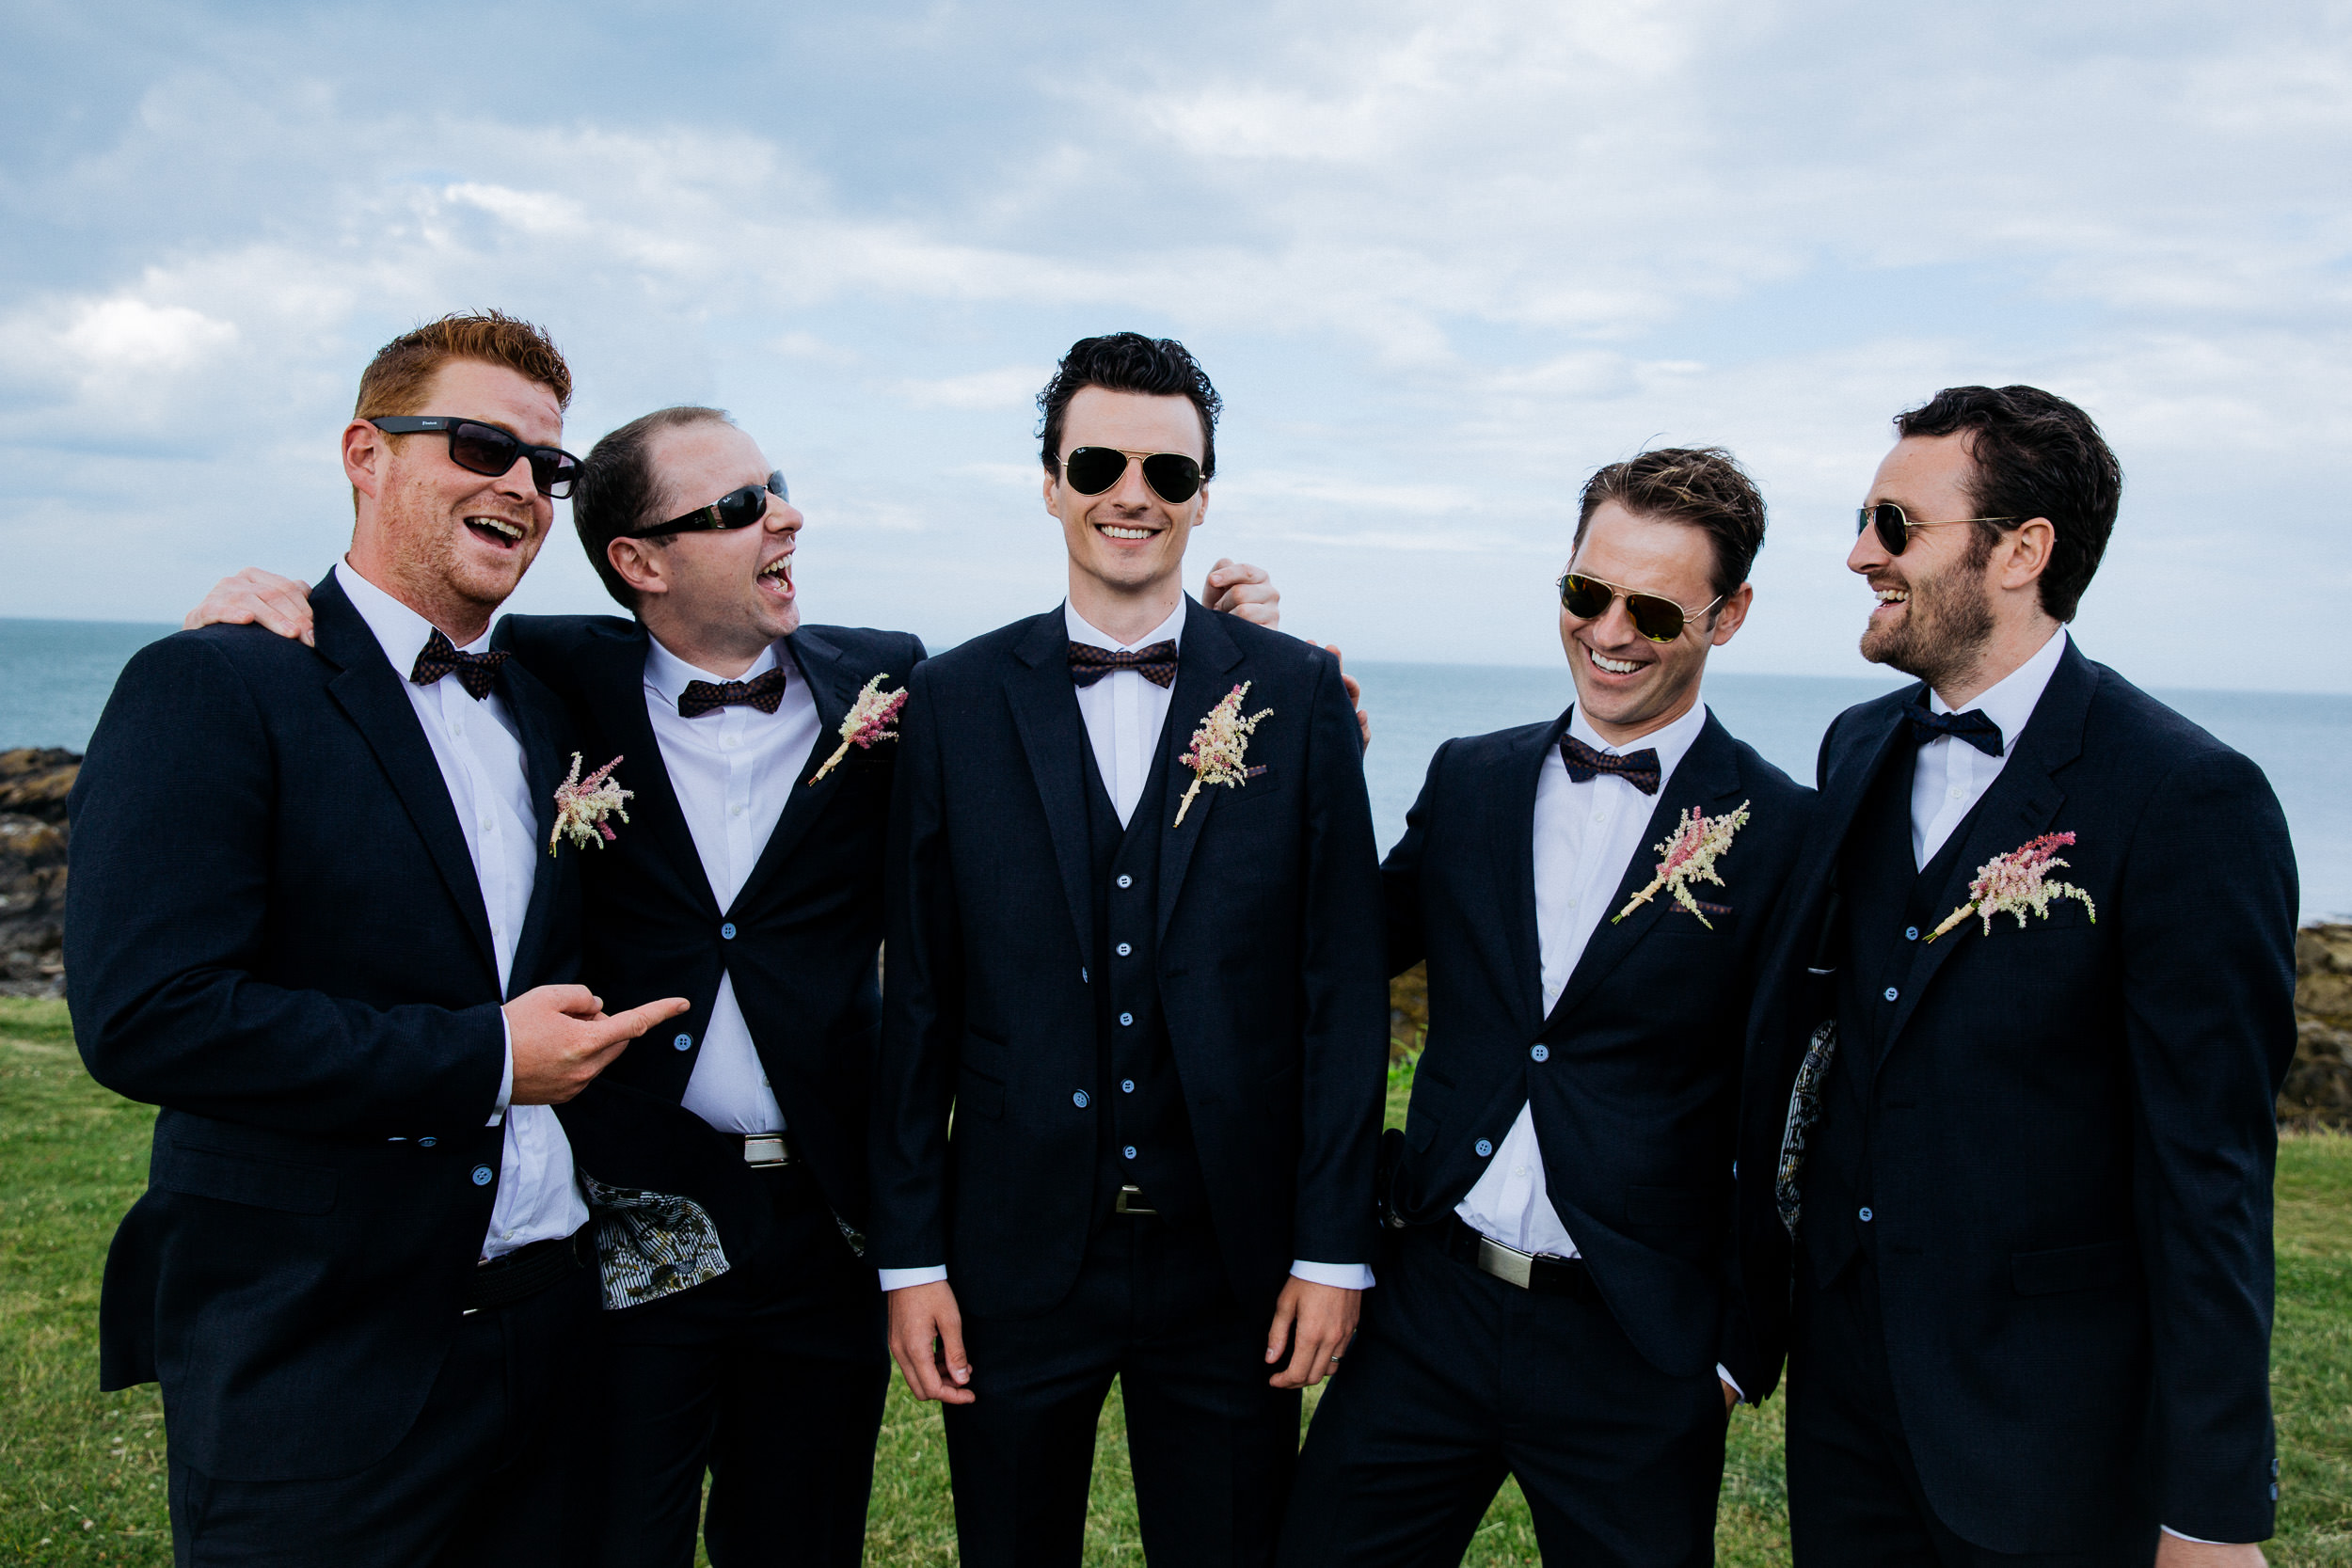 clairebyrnephotography-fun-wedding-photographer-ireland-creative-45.jpg